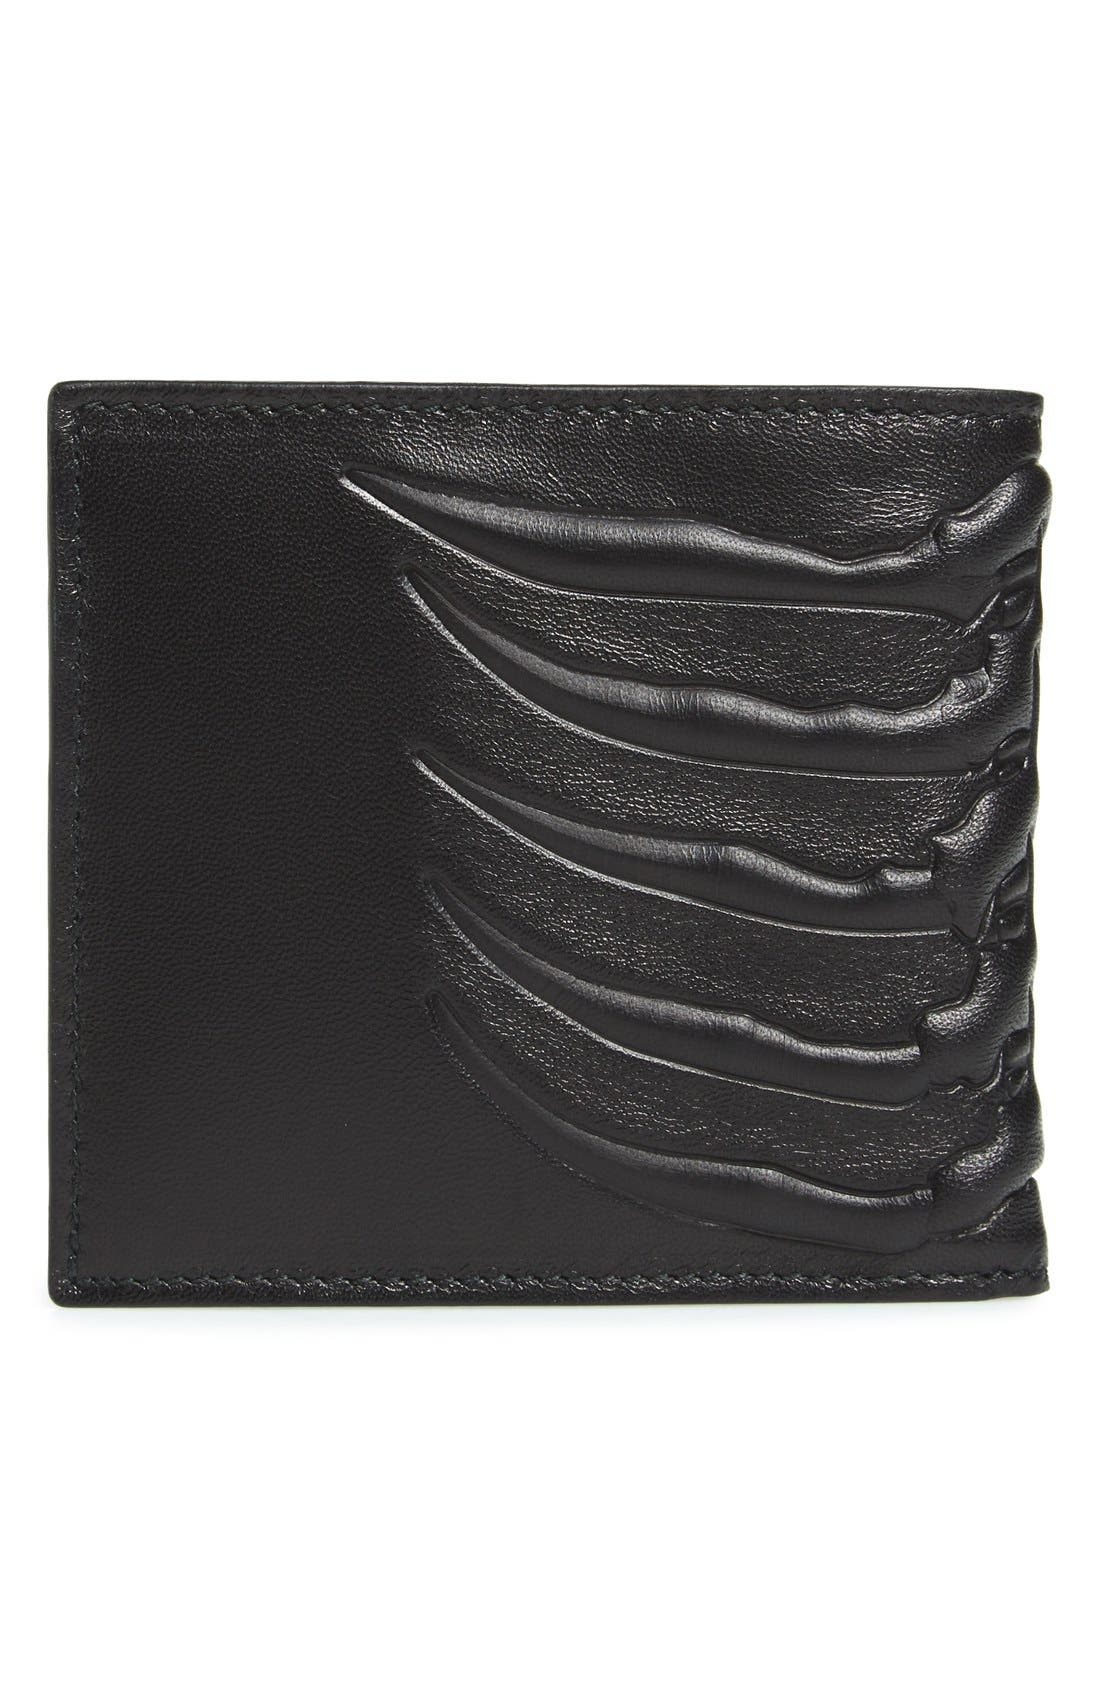 Rib Cage Leather Wallet,                             Alternate thumbnail 3, color,                             BLACK